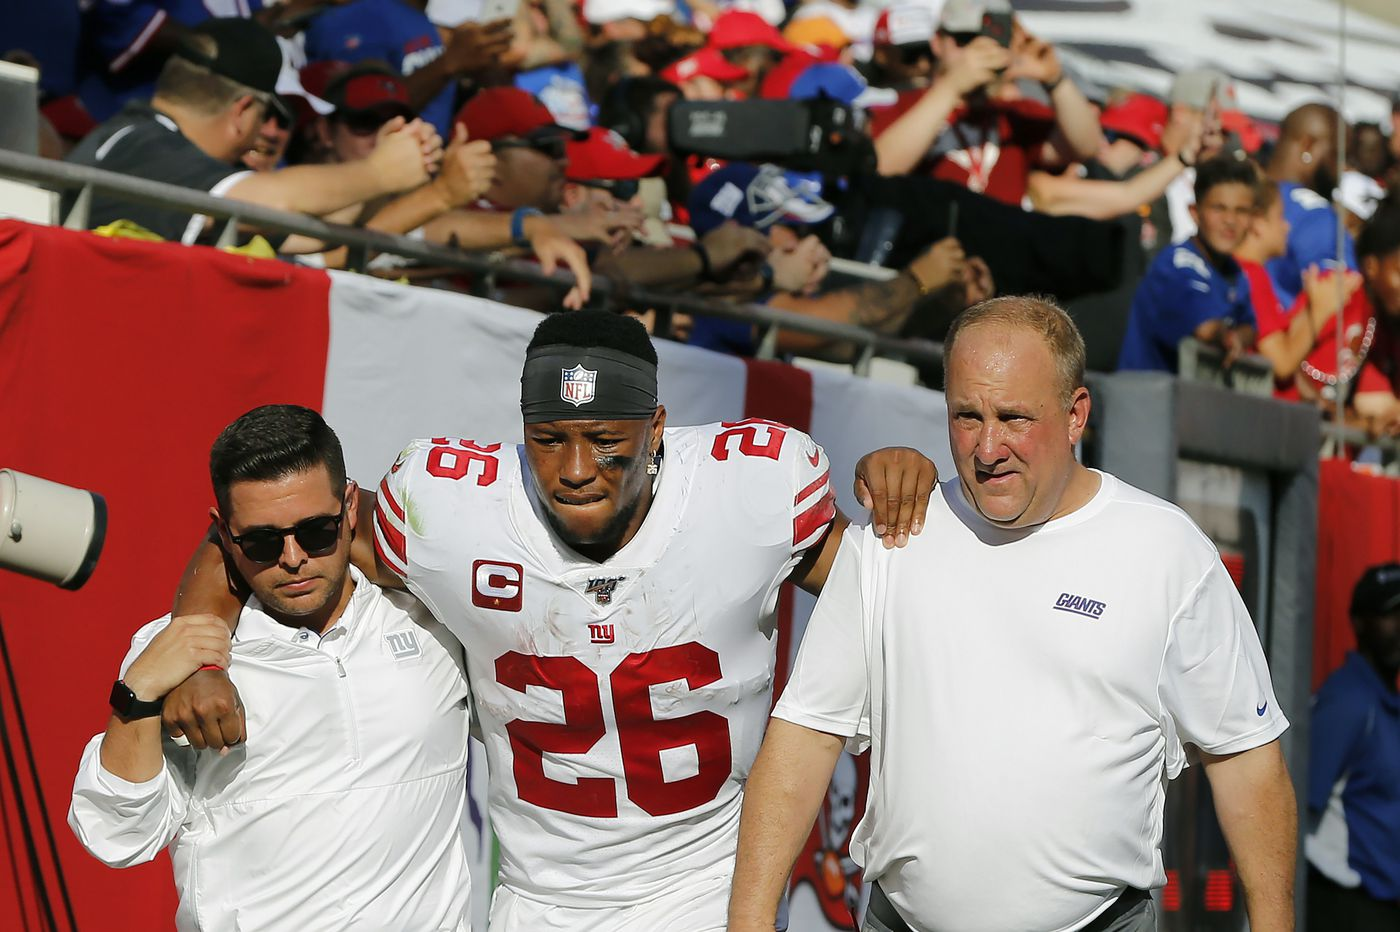 Saquon Barkley out for Giants following first half injury against the Buccaneers